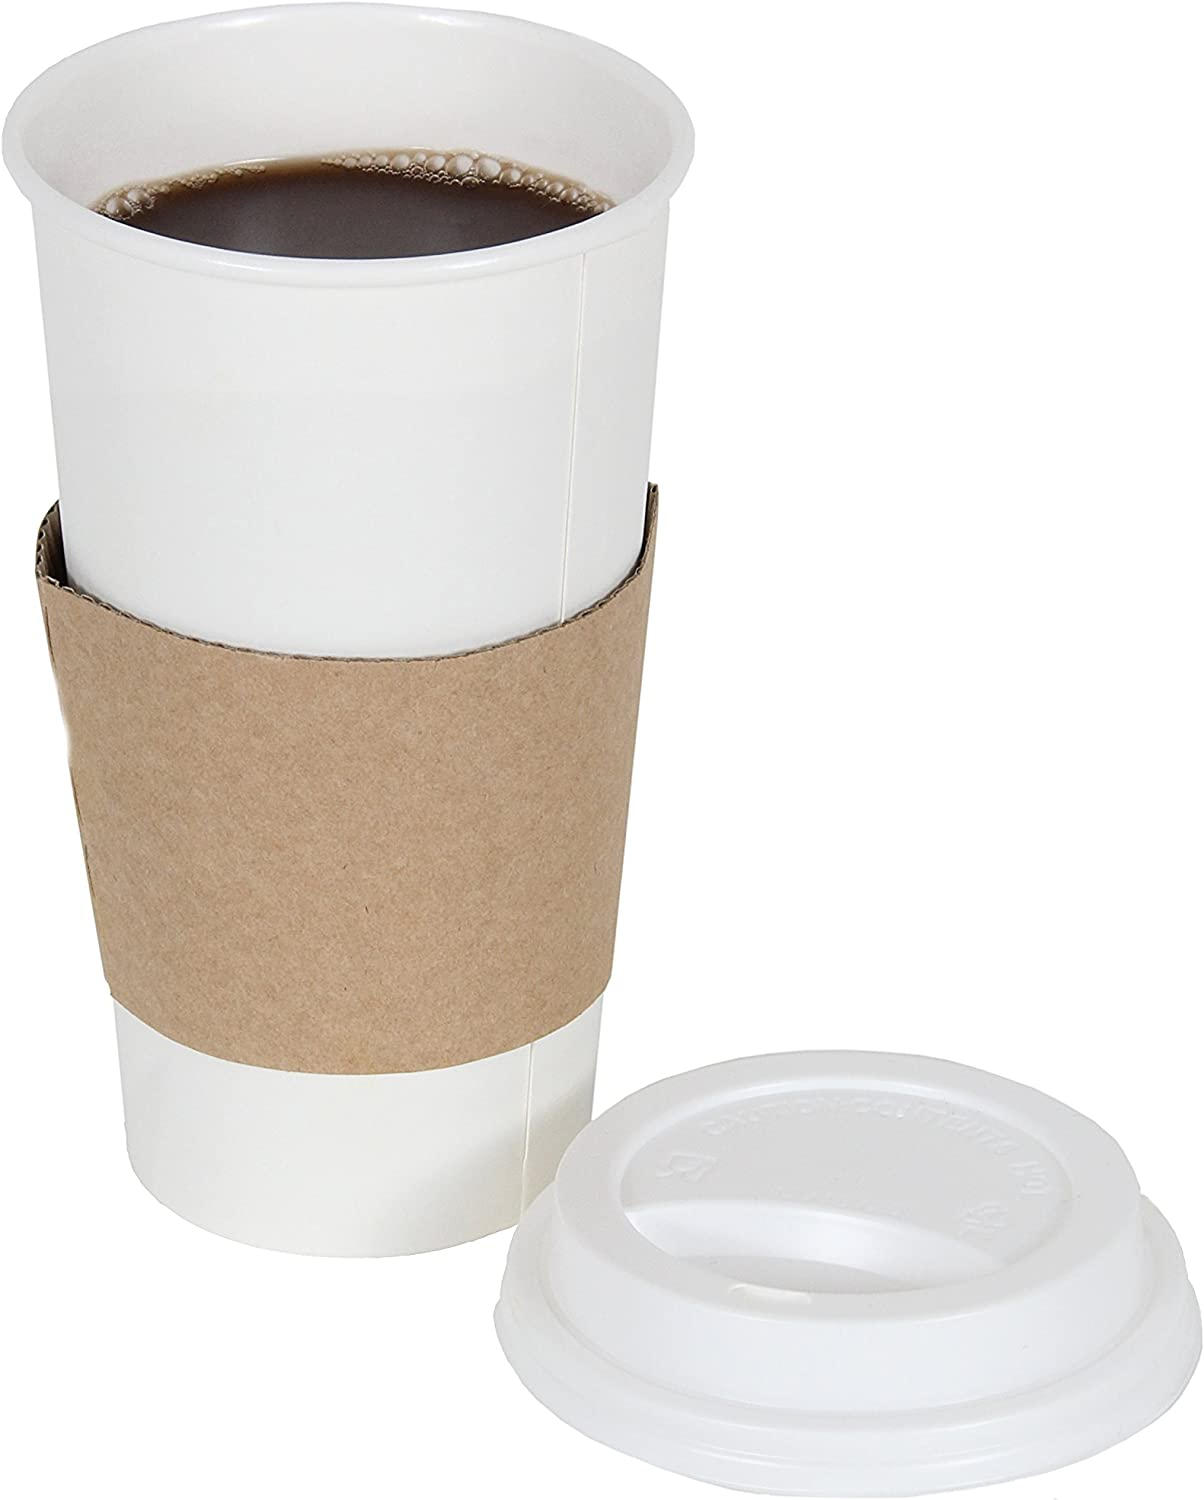 CucinaPrime 20oz White Disposable To-Go Paper Coffee/Hot Beverage Cups with White Lids and Sleeves- 50 Pack